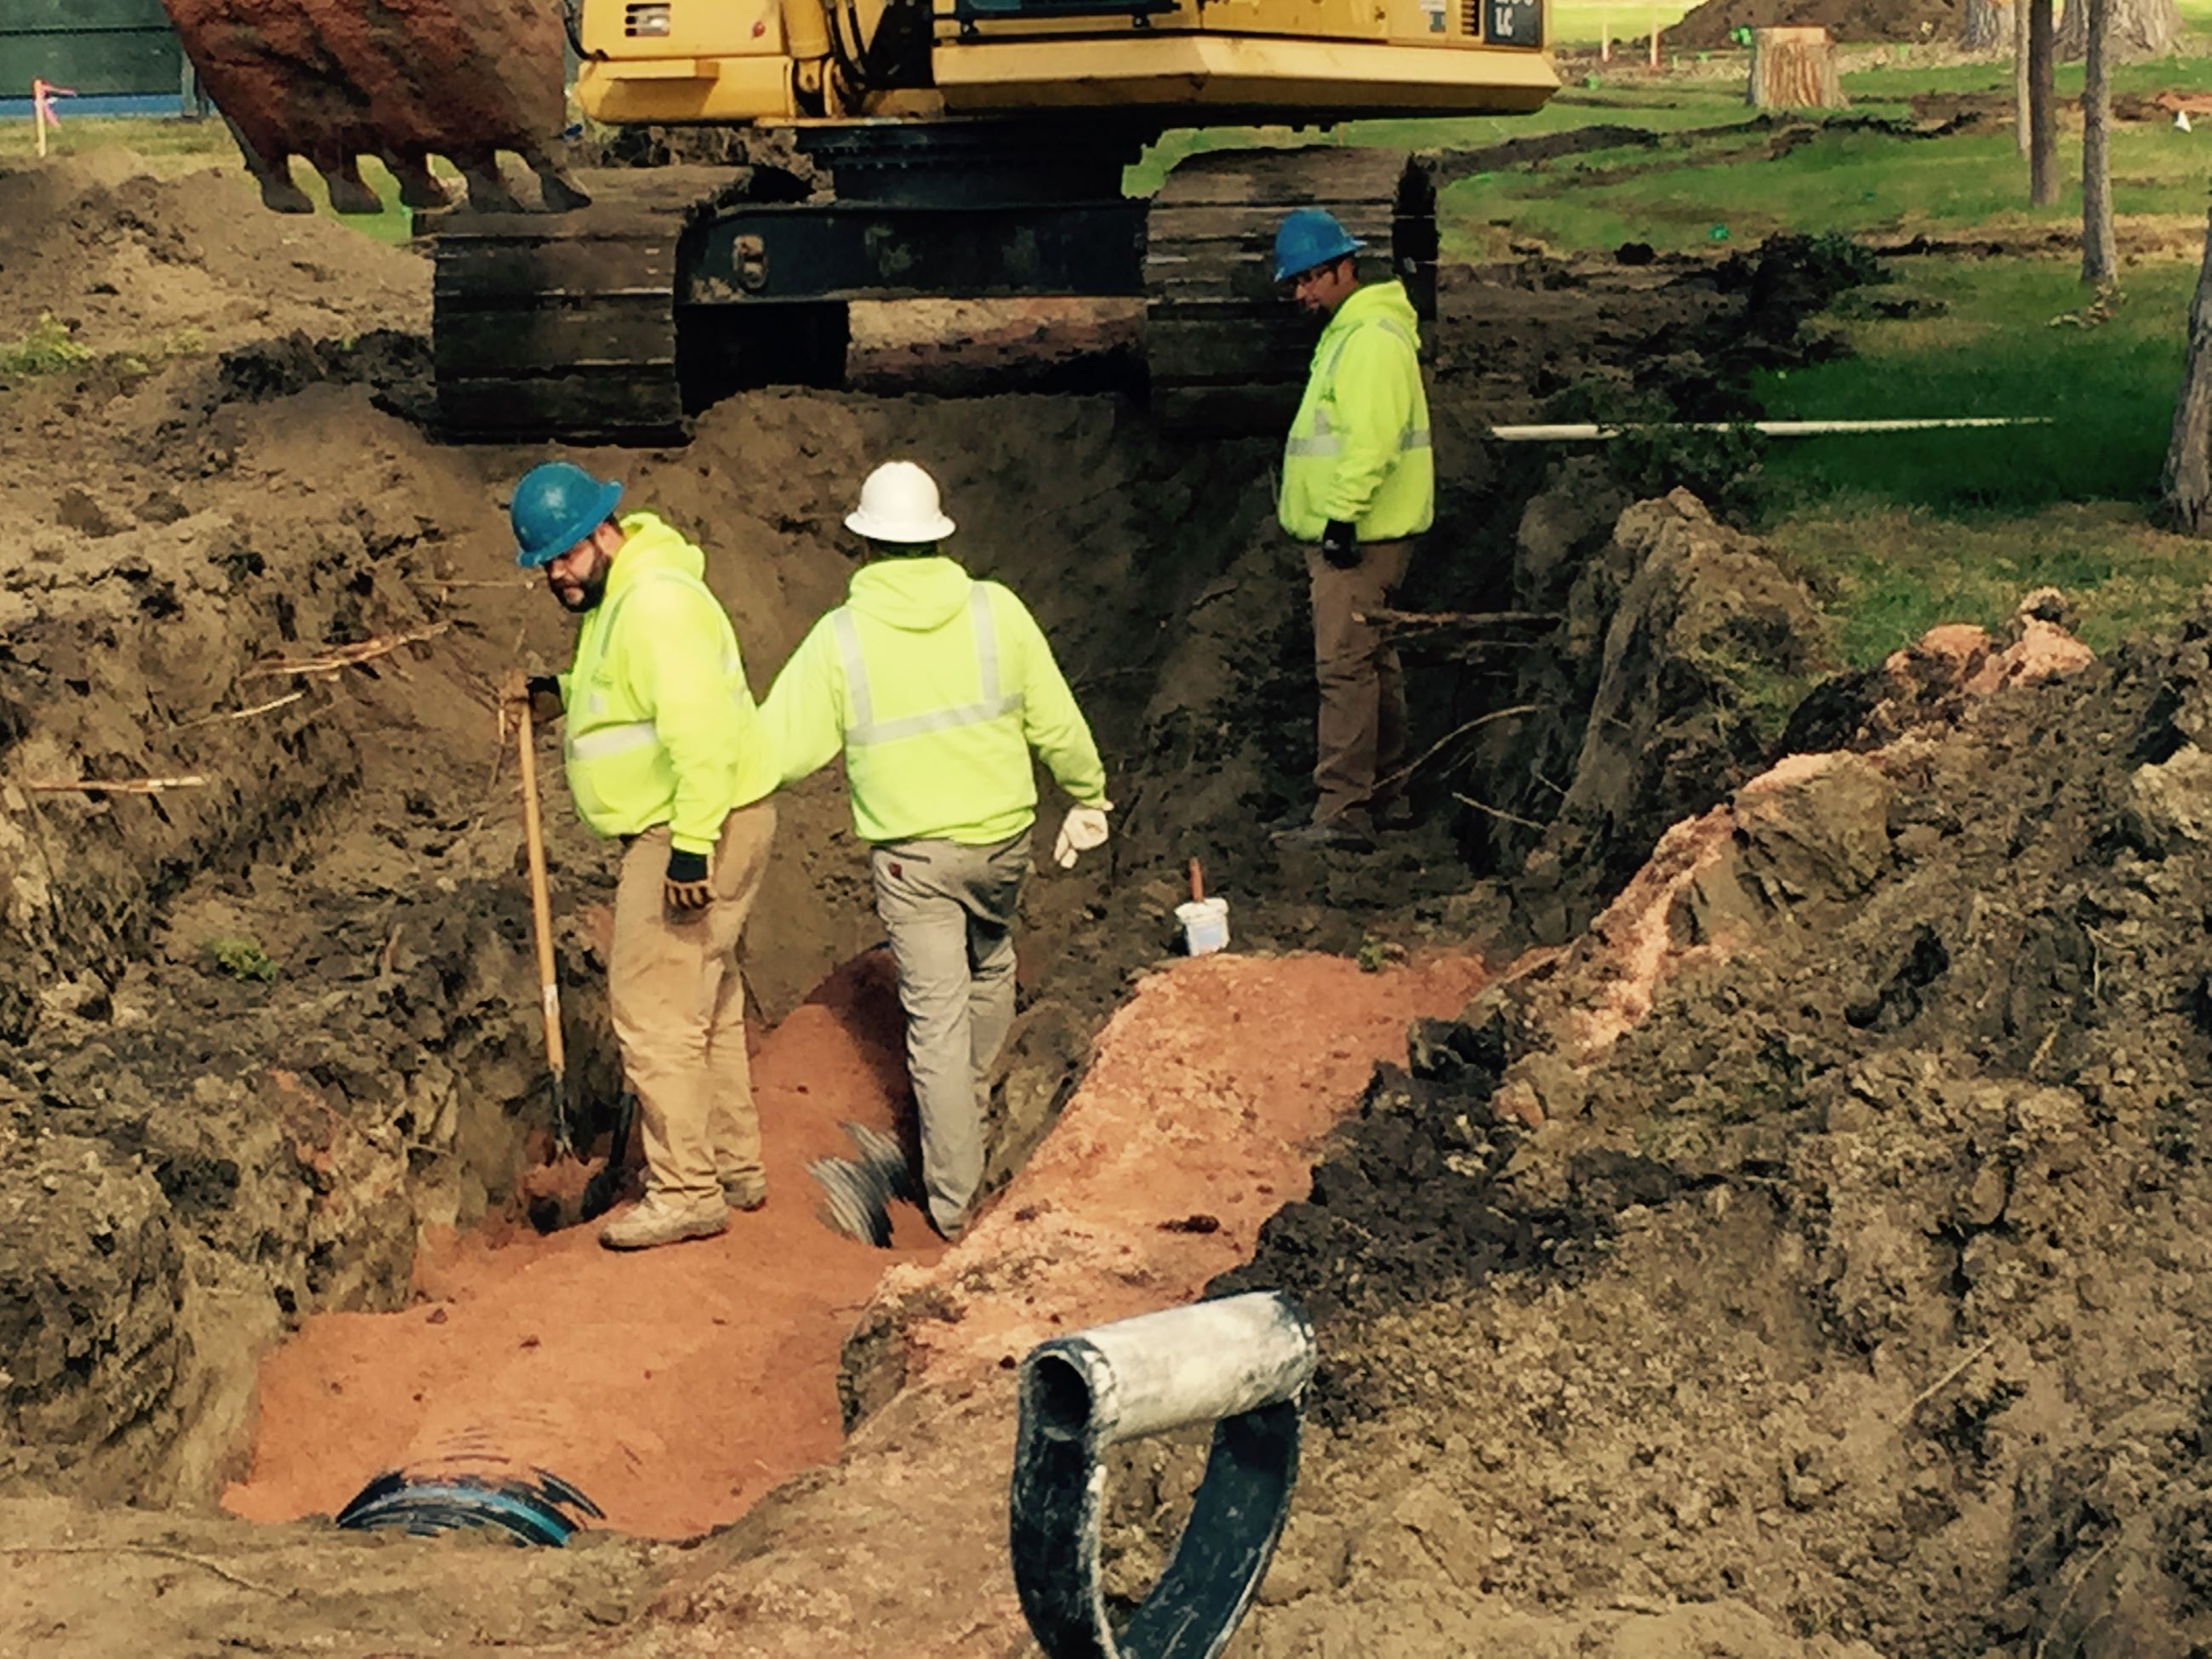 WATER DEPT. INSTALLING STORM SEWER FOR GRIFFIN PARK STORM SHELTER